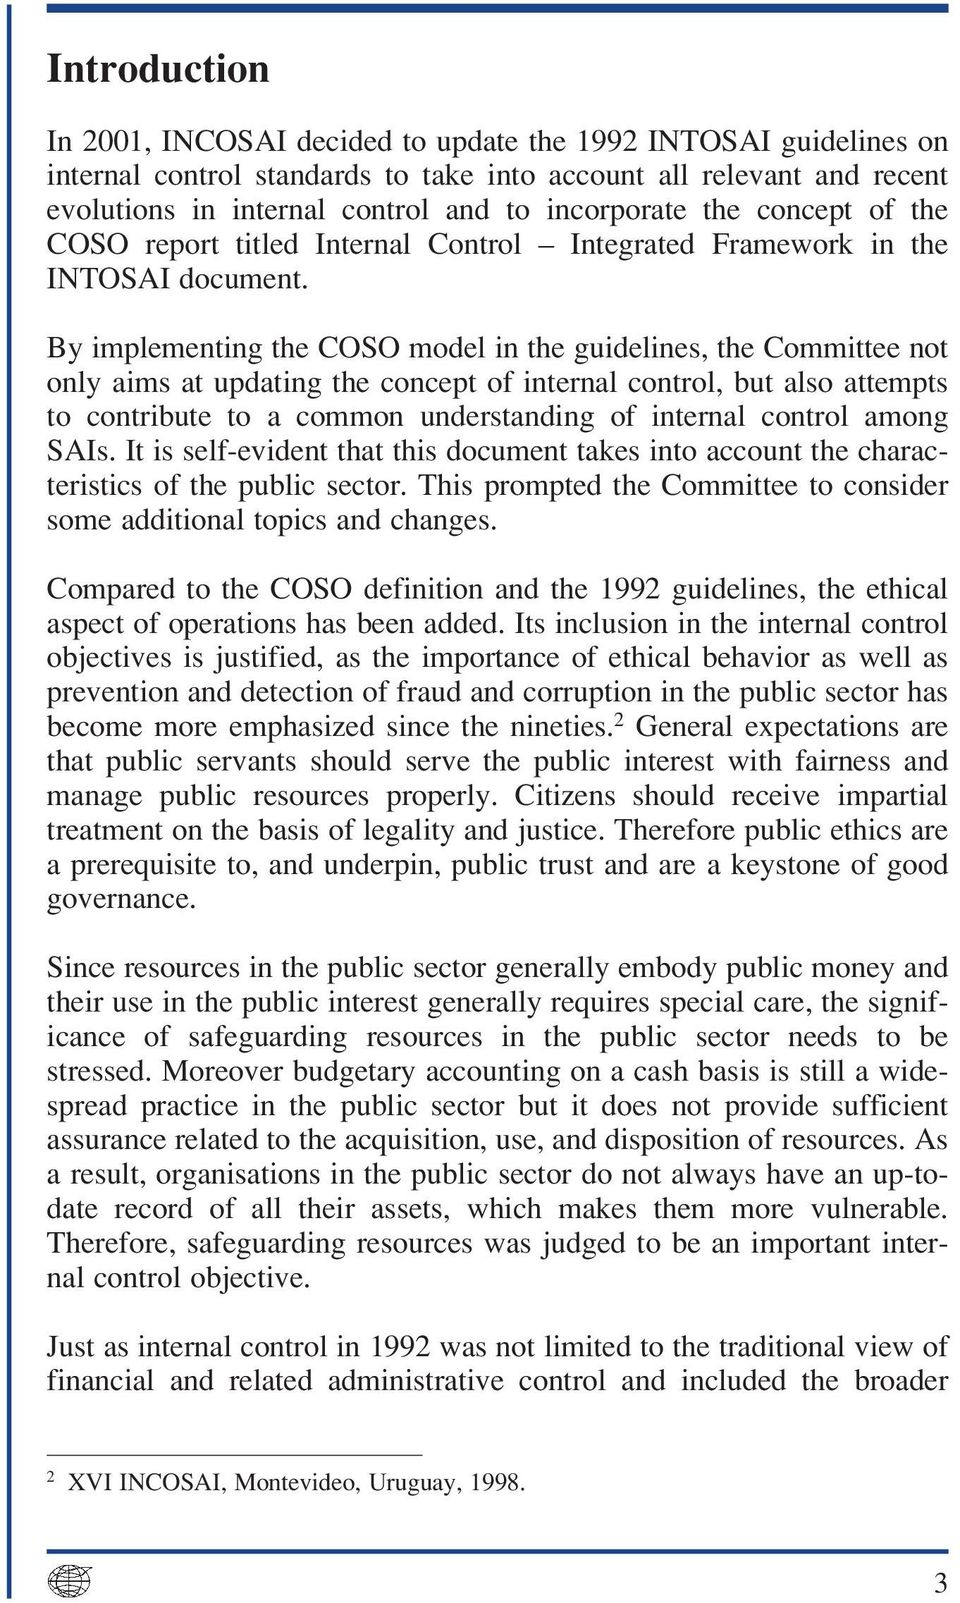 By implementing the COSO model in the guidelines, the Committee not only aims at updating the concept of internal control, but also attempts to contribute to a common understanding of internal